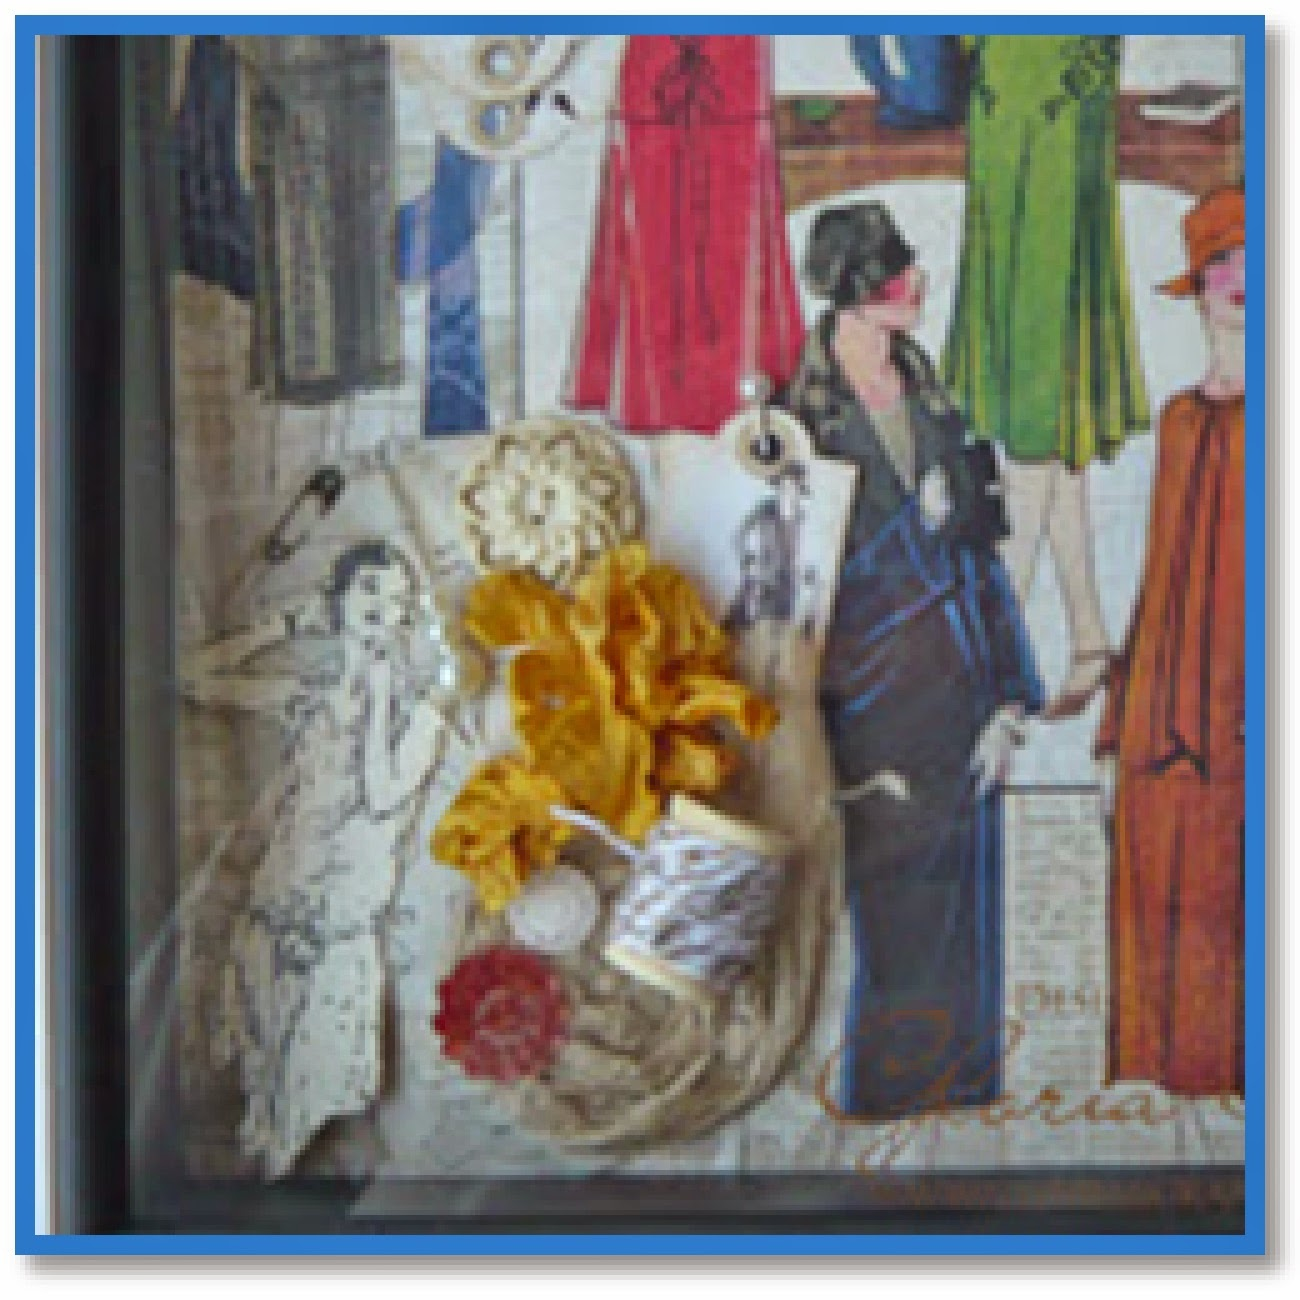 shadow box contents include sewing patterns